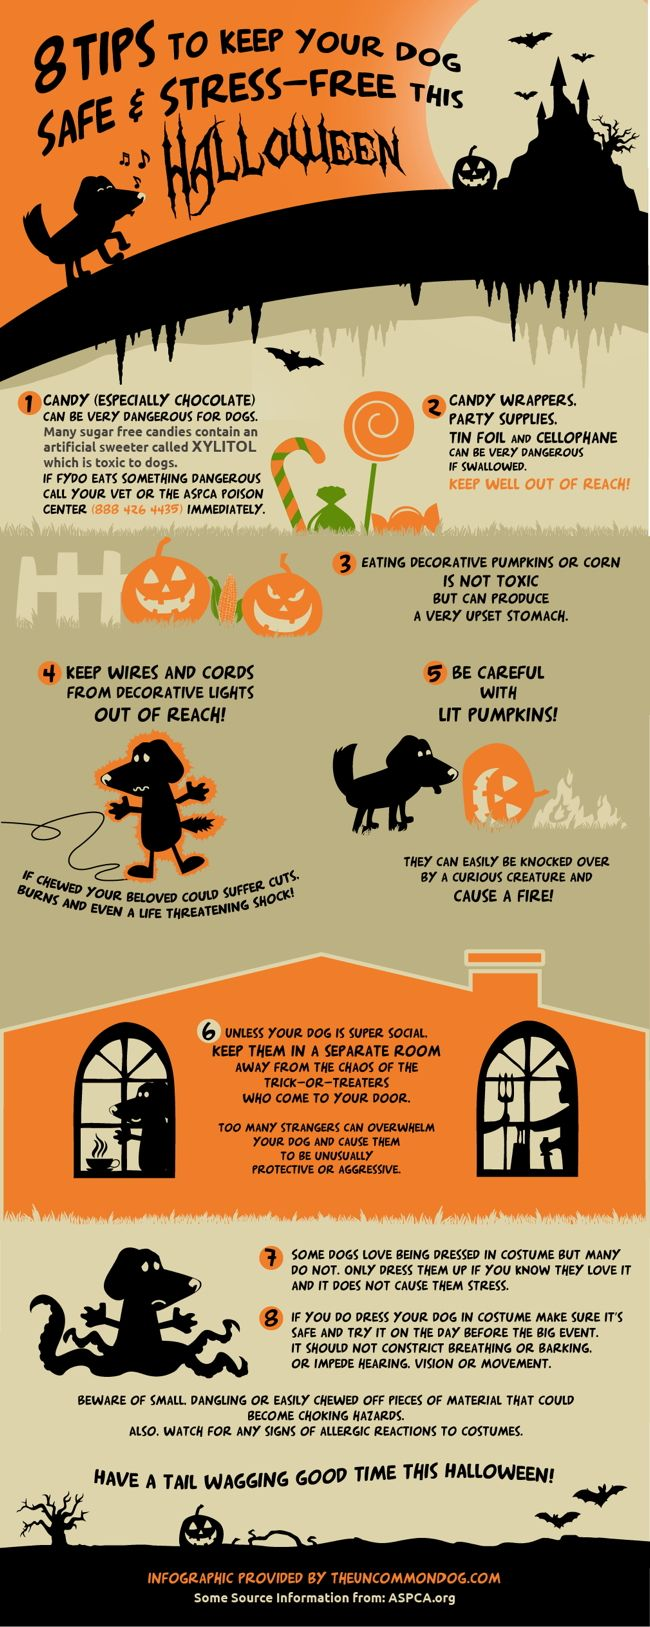 Halloween Dog Safety: 8 Tips to Keep Your Dog Safe and Stress-Free this Halloween